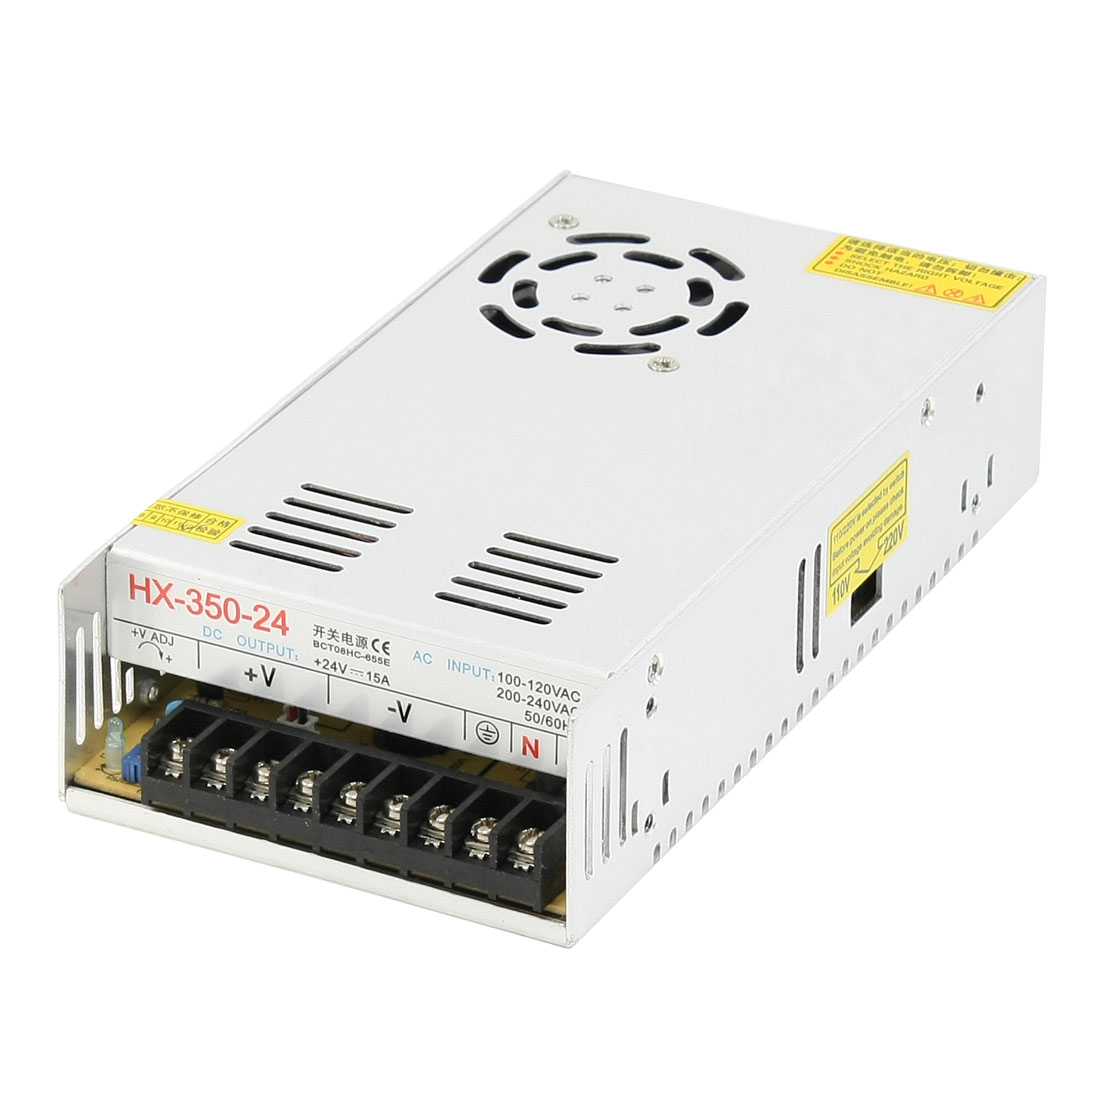 LED Strip Illuminated Switching Power Supply Driver 360W 200-240VAC DC24V 15A